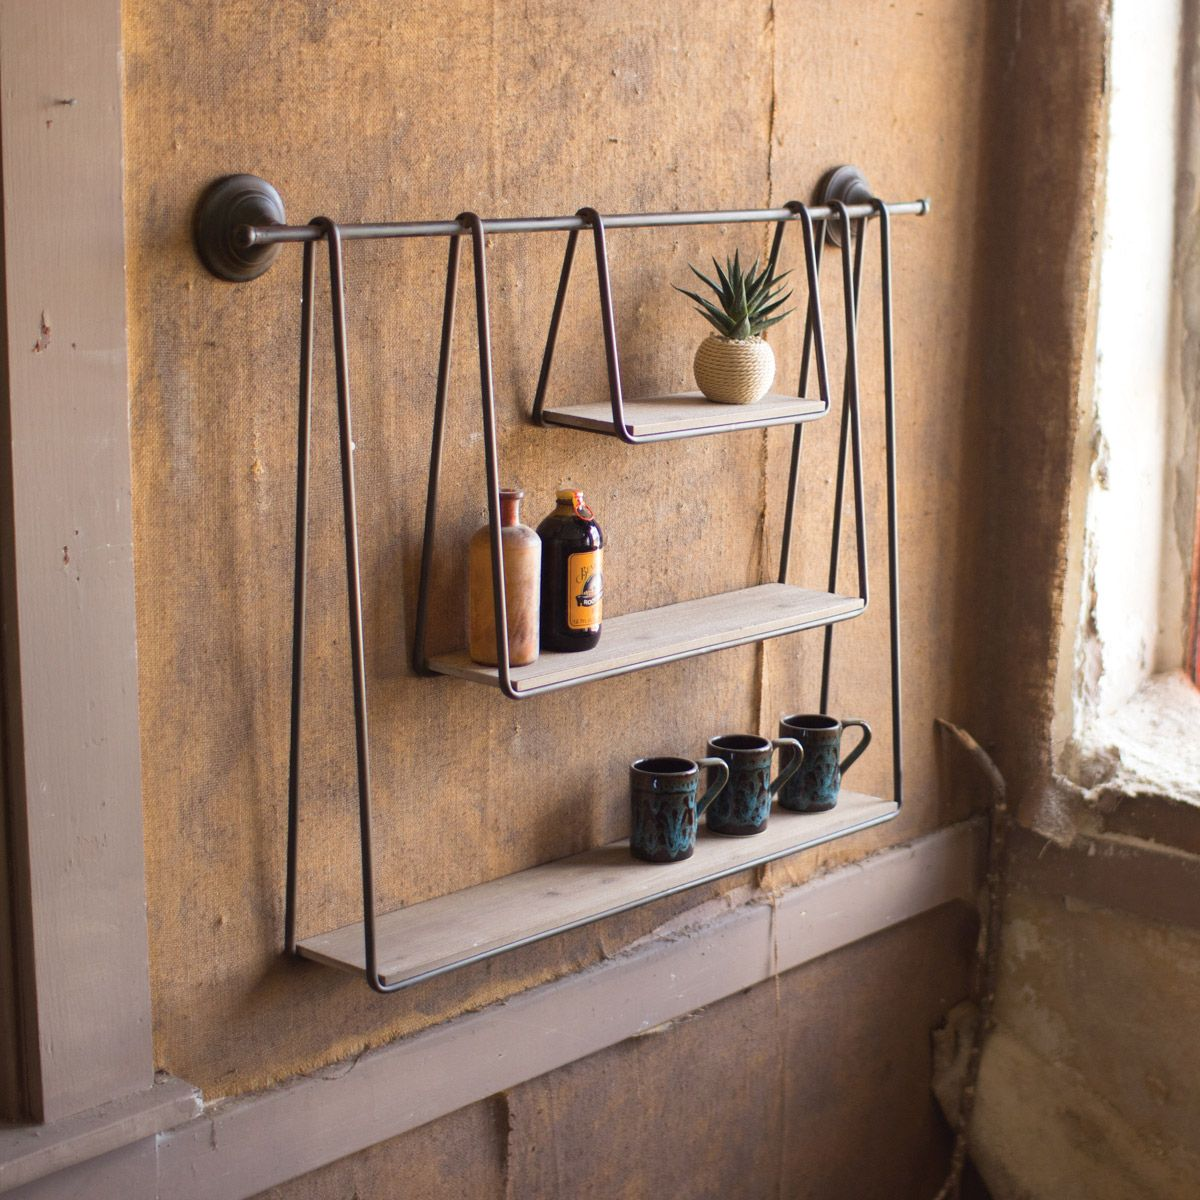 A-Frame Three Tier Hanging Shelf